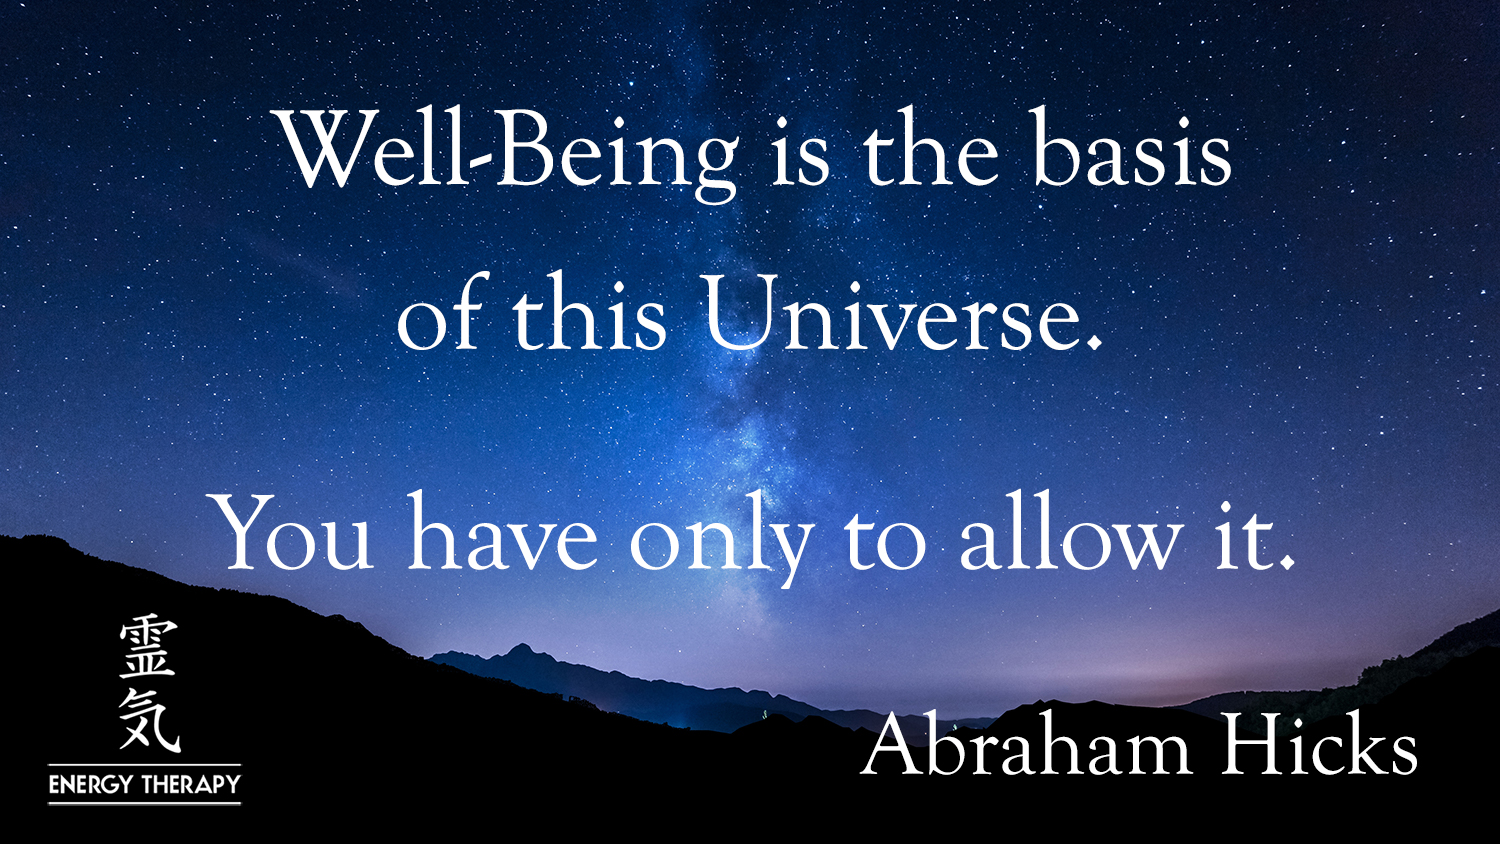 abraham-hicks - well-being is the basis of this universe